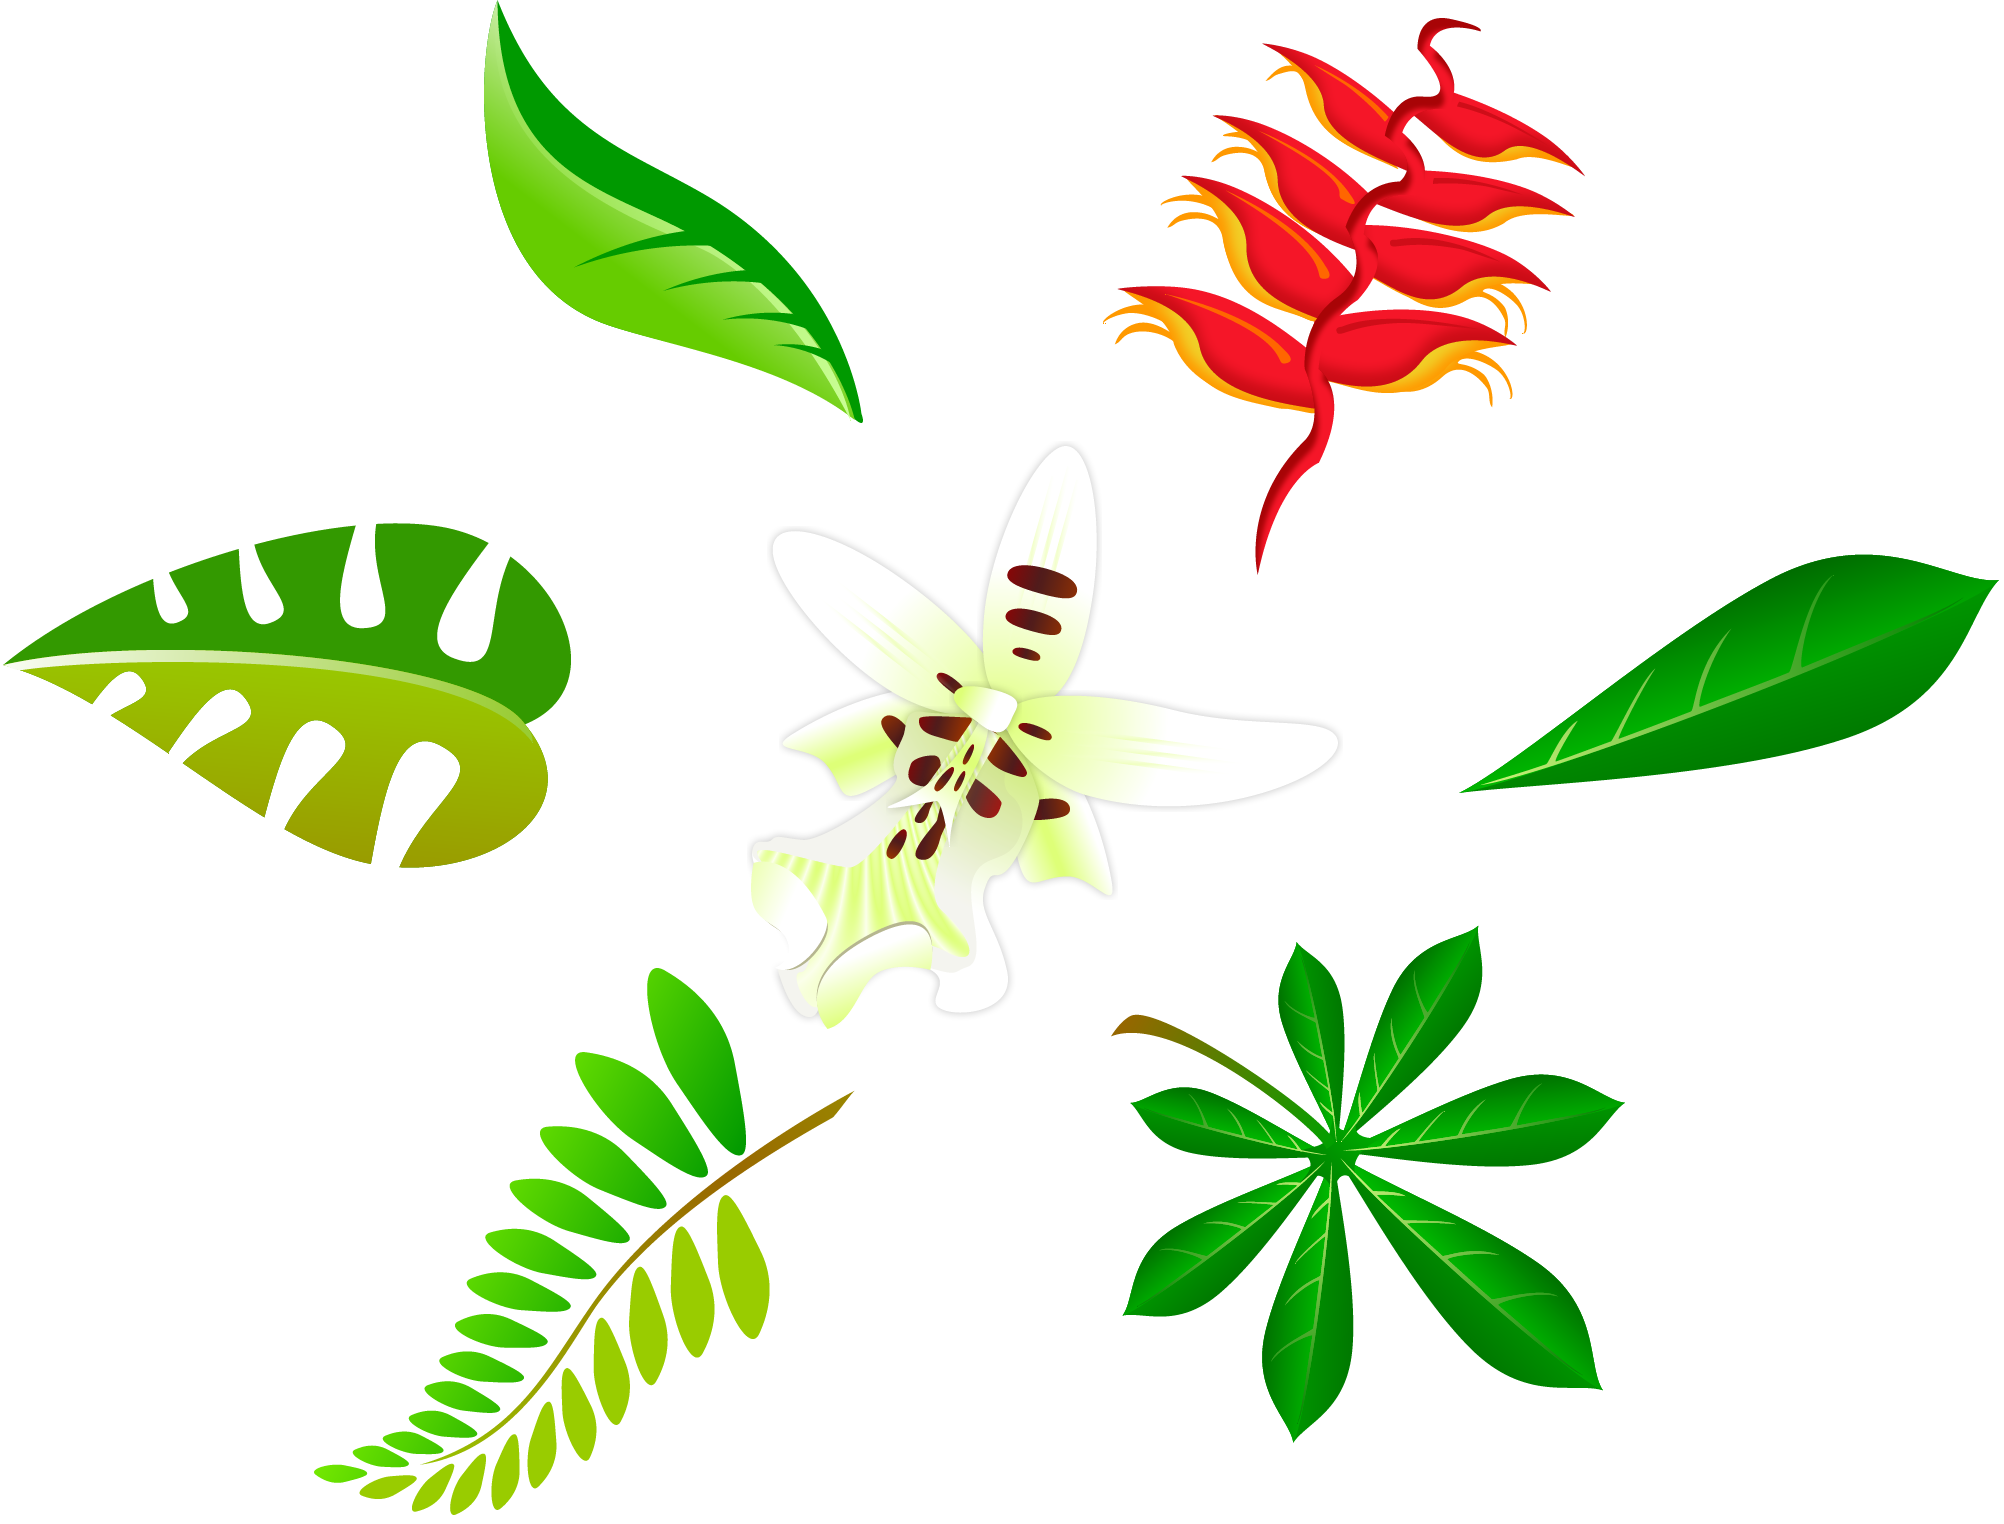 Leave vector plant. Best leaves images